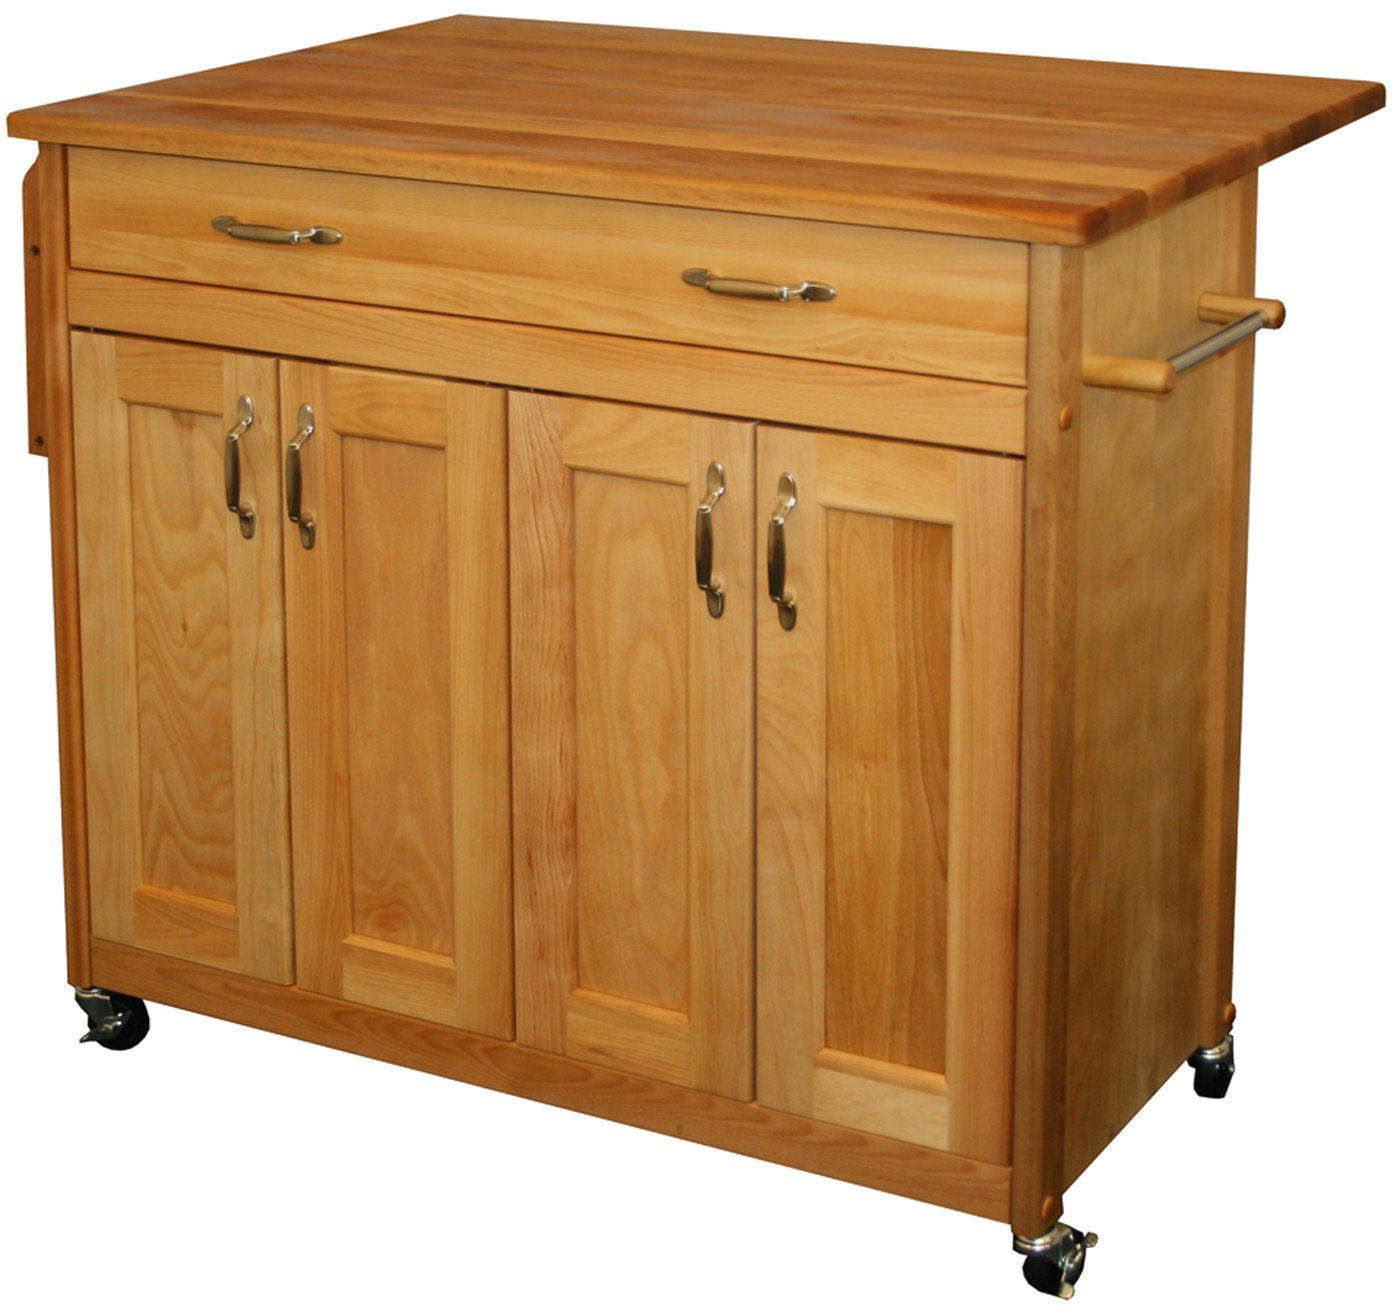 Catskill Craftsmen Mid Sized Island With Flat Panel Doors And Drop Leaf